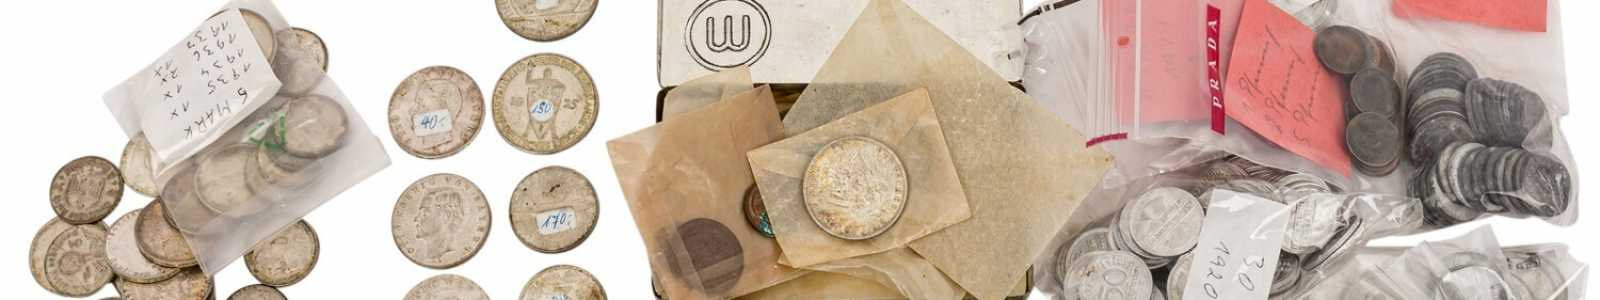 Coins, medals, postage stamps, historical items